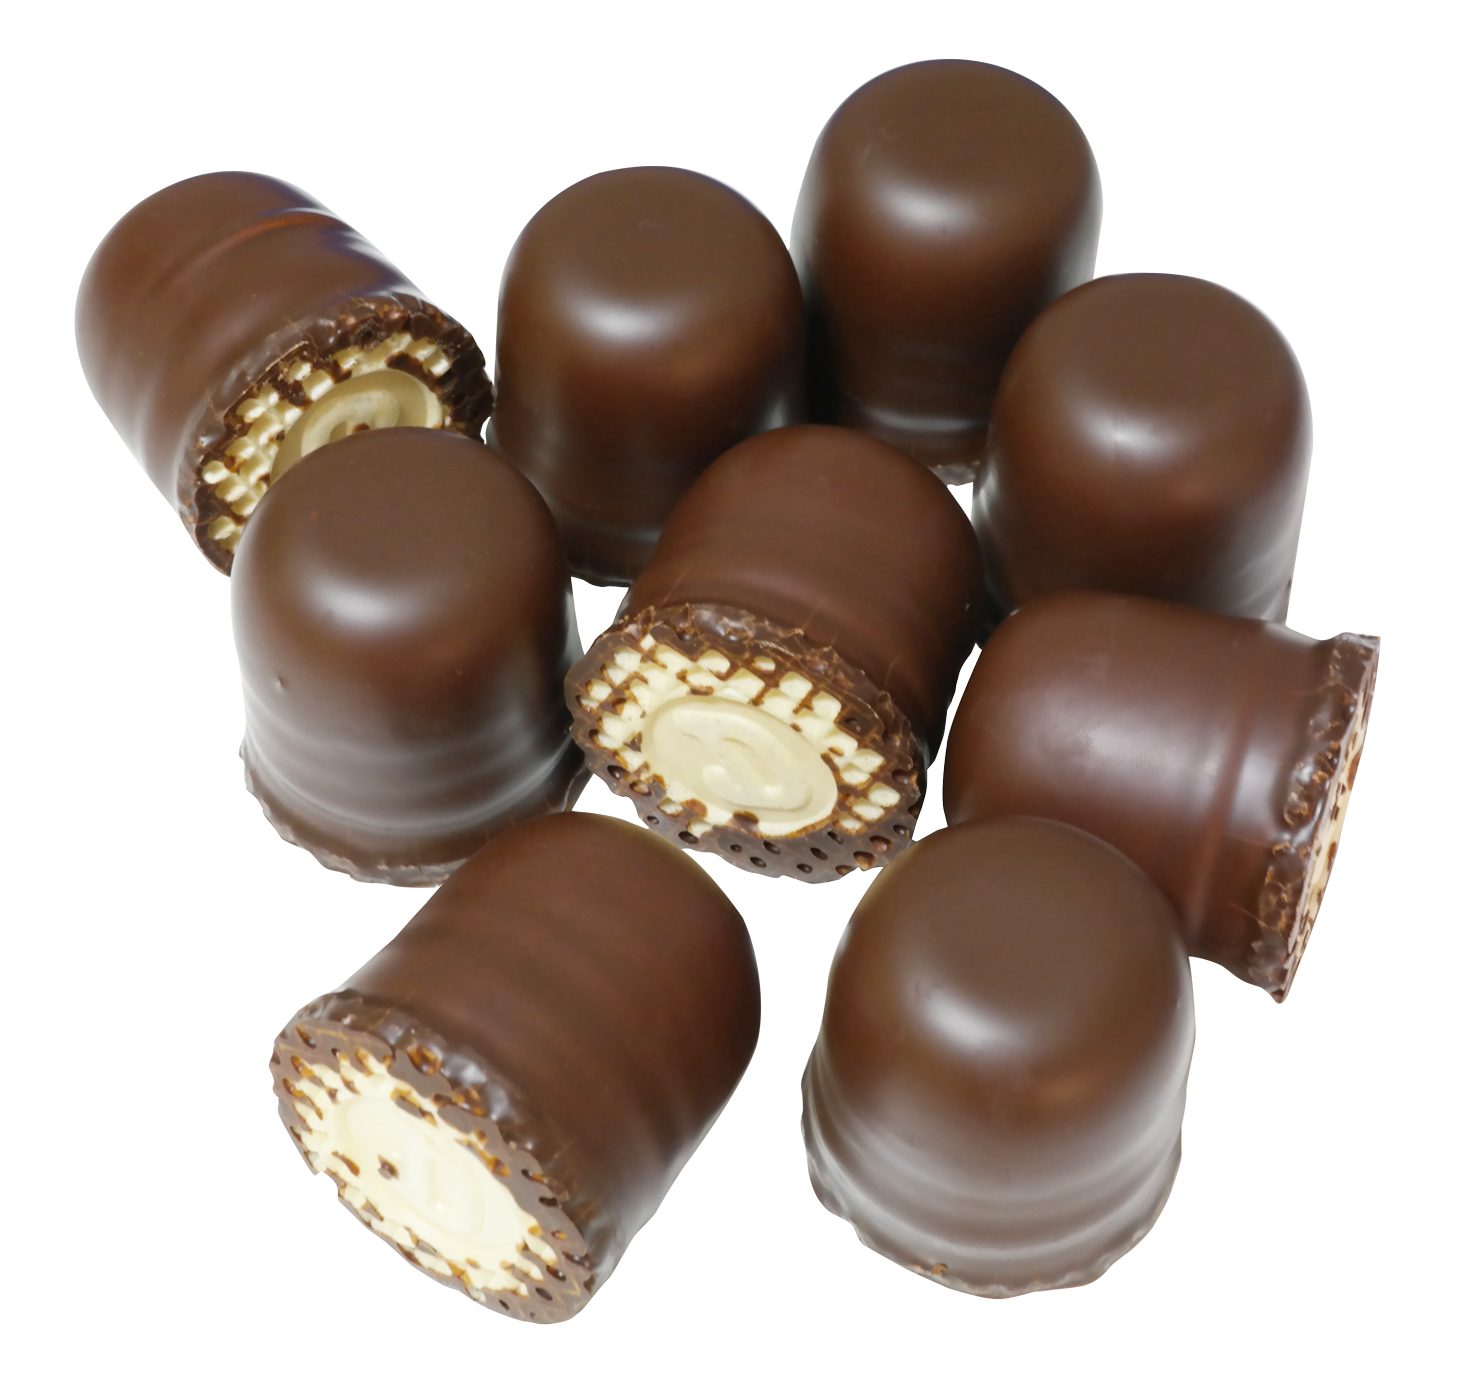 chocolate png transparent image pngpix #14355